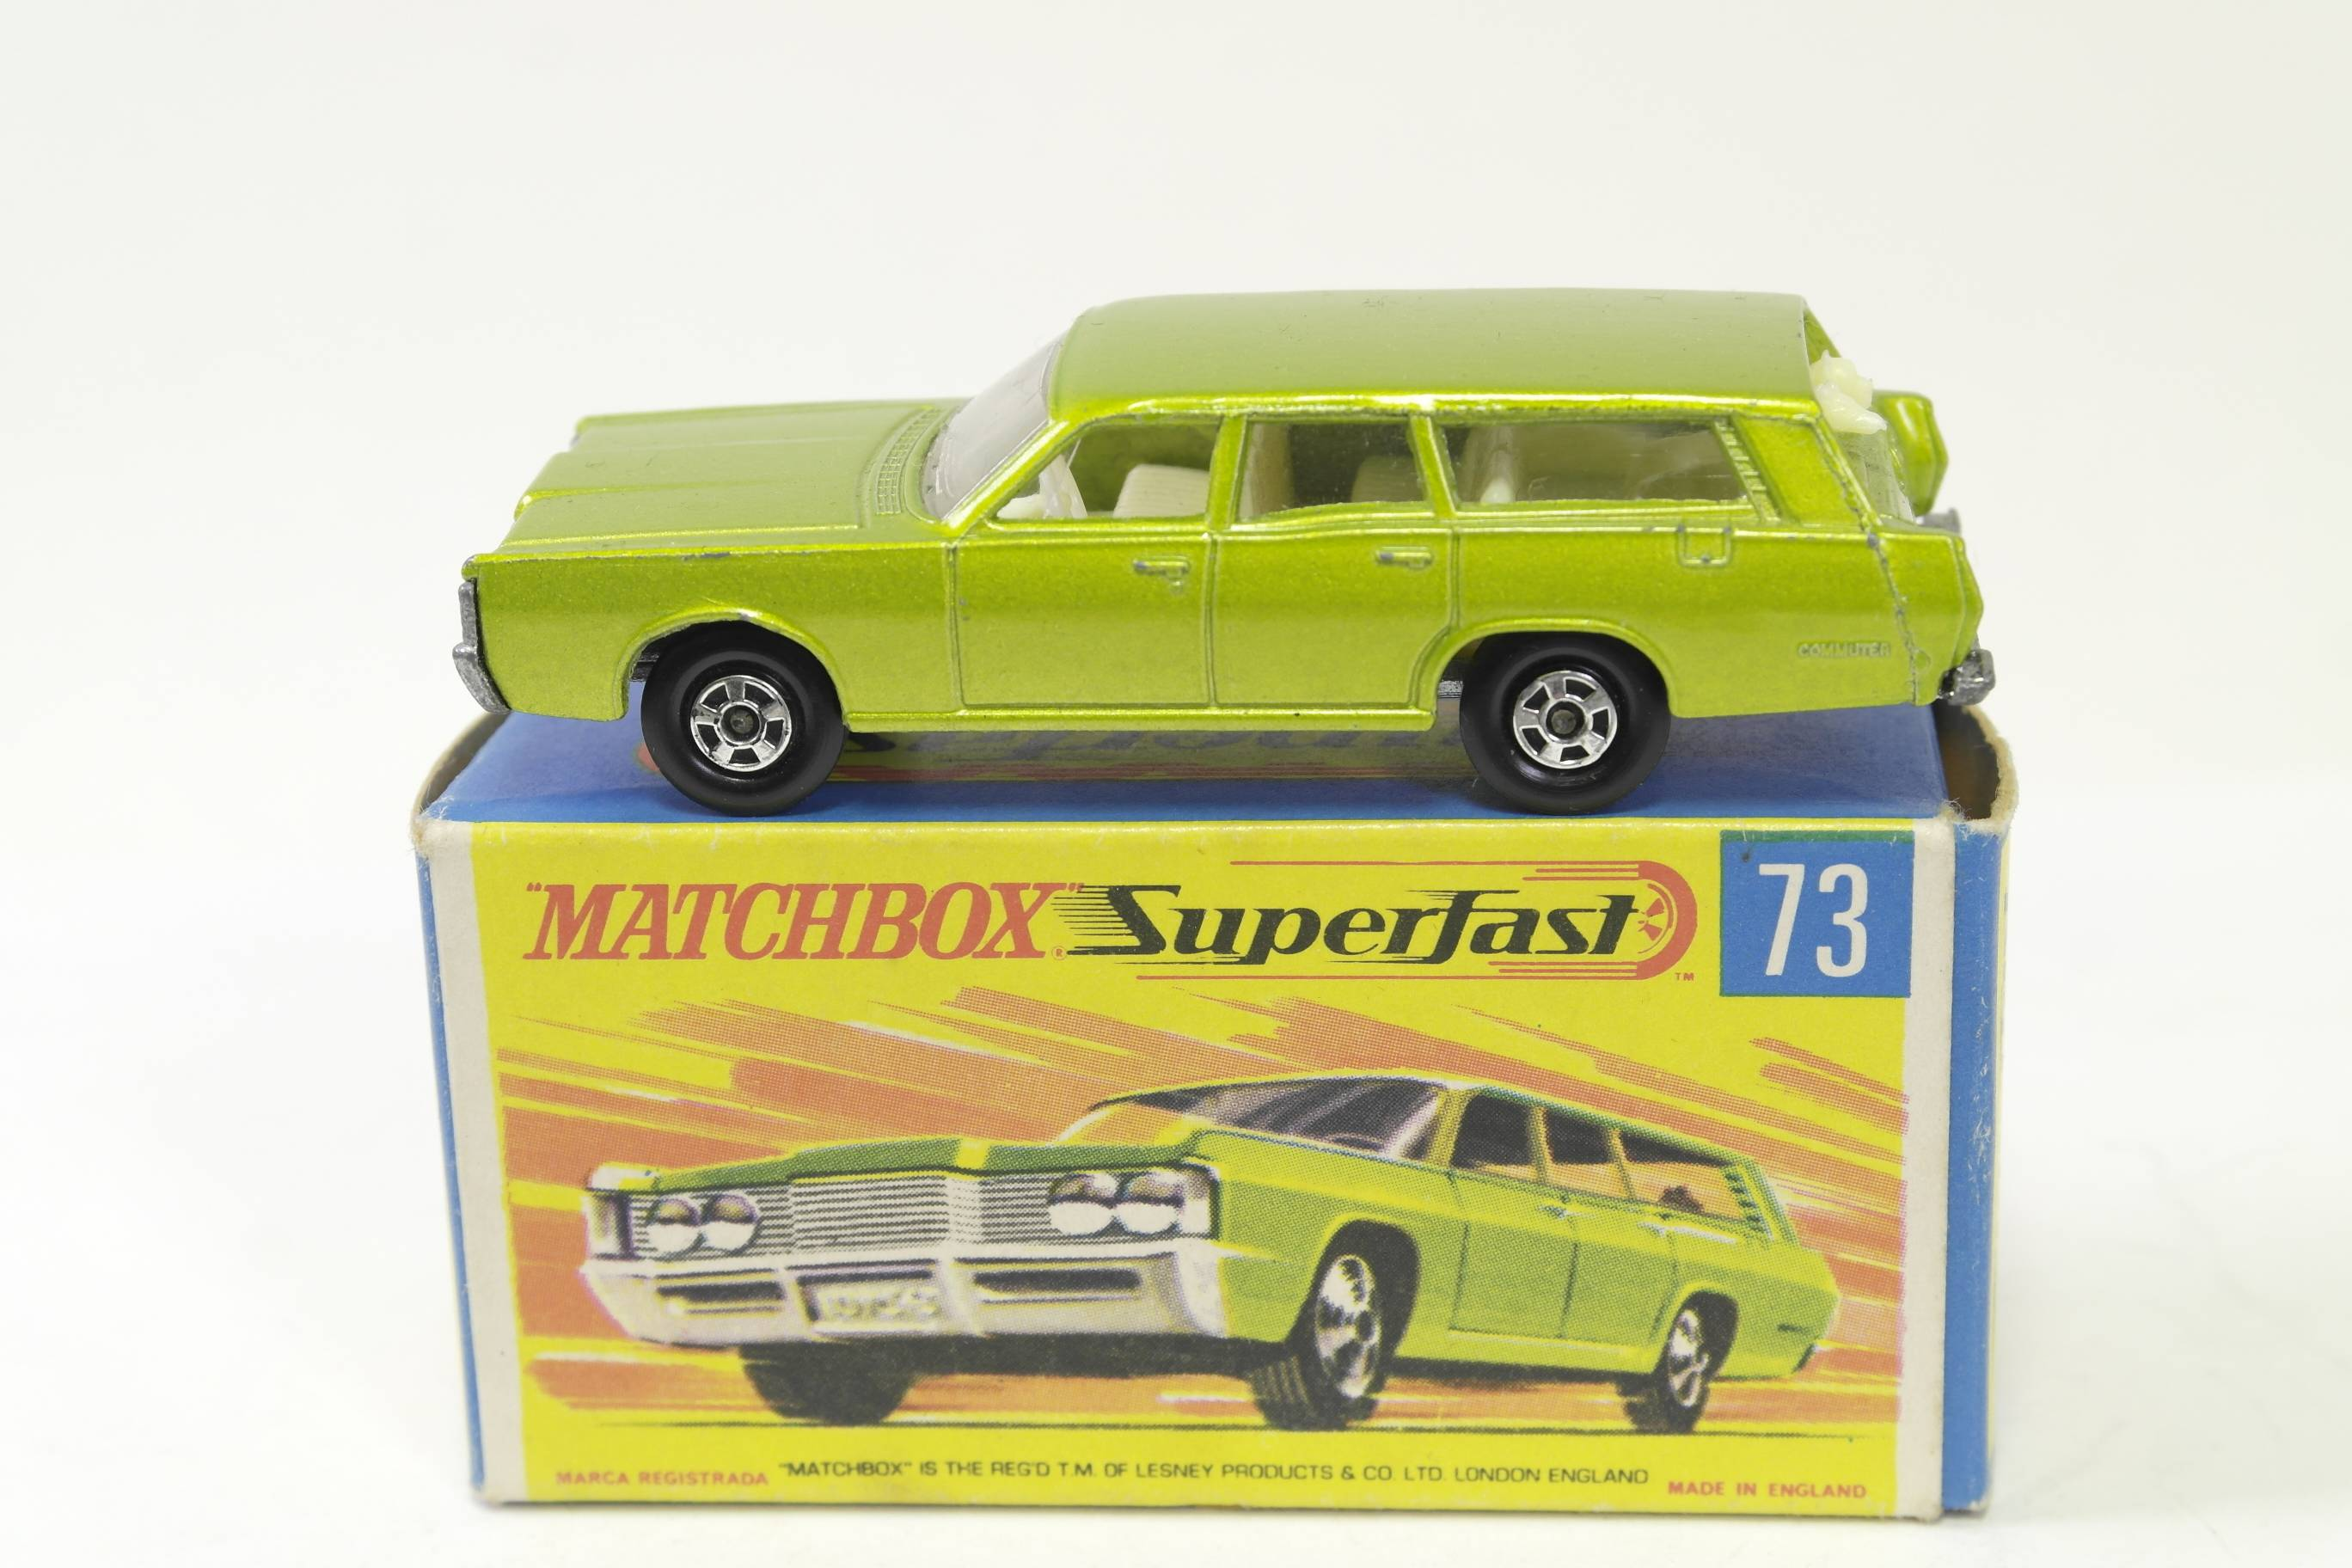 Matchbox mb73 side